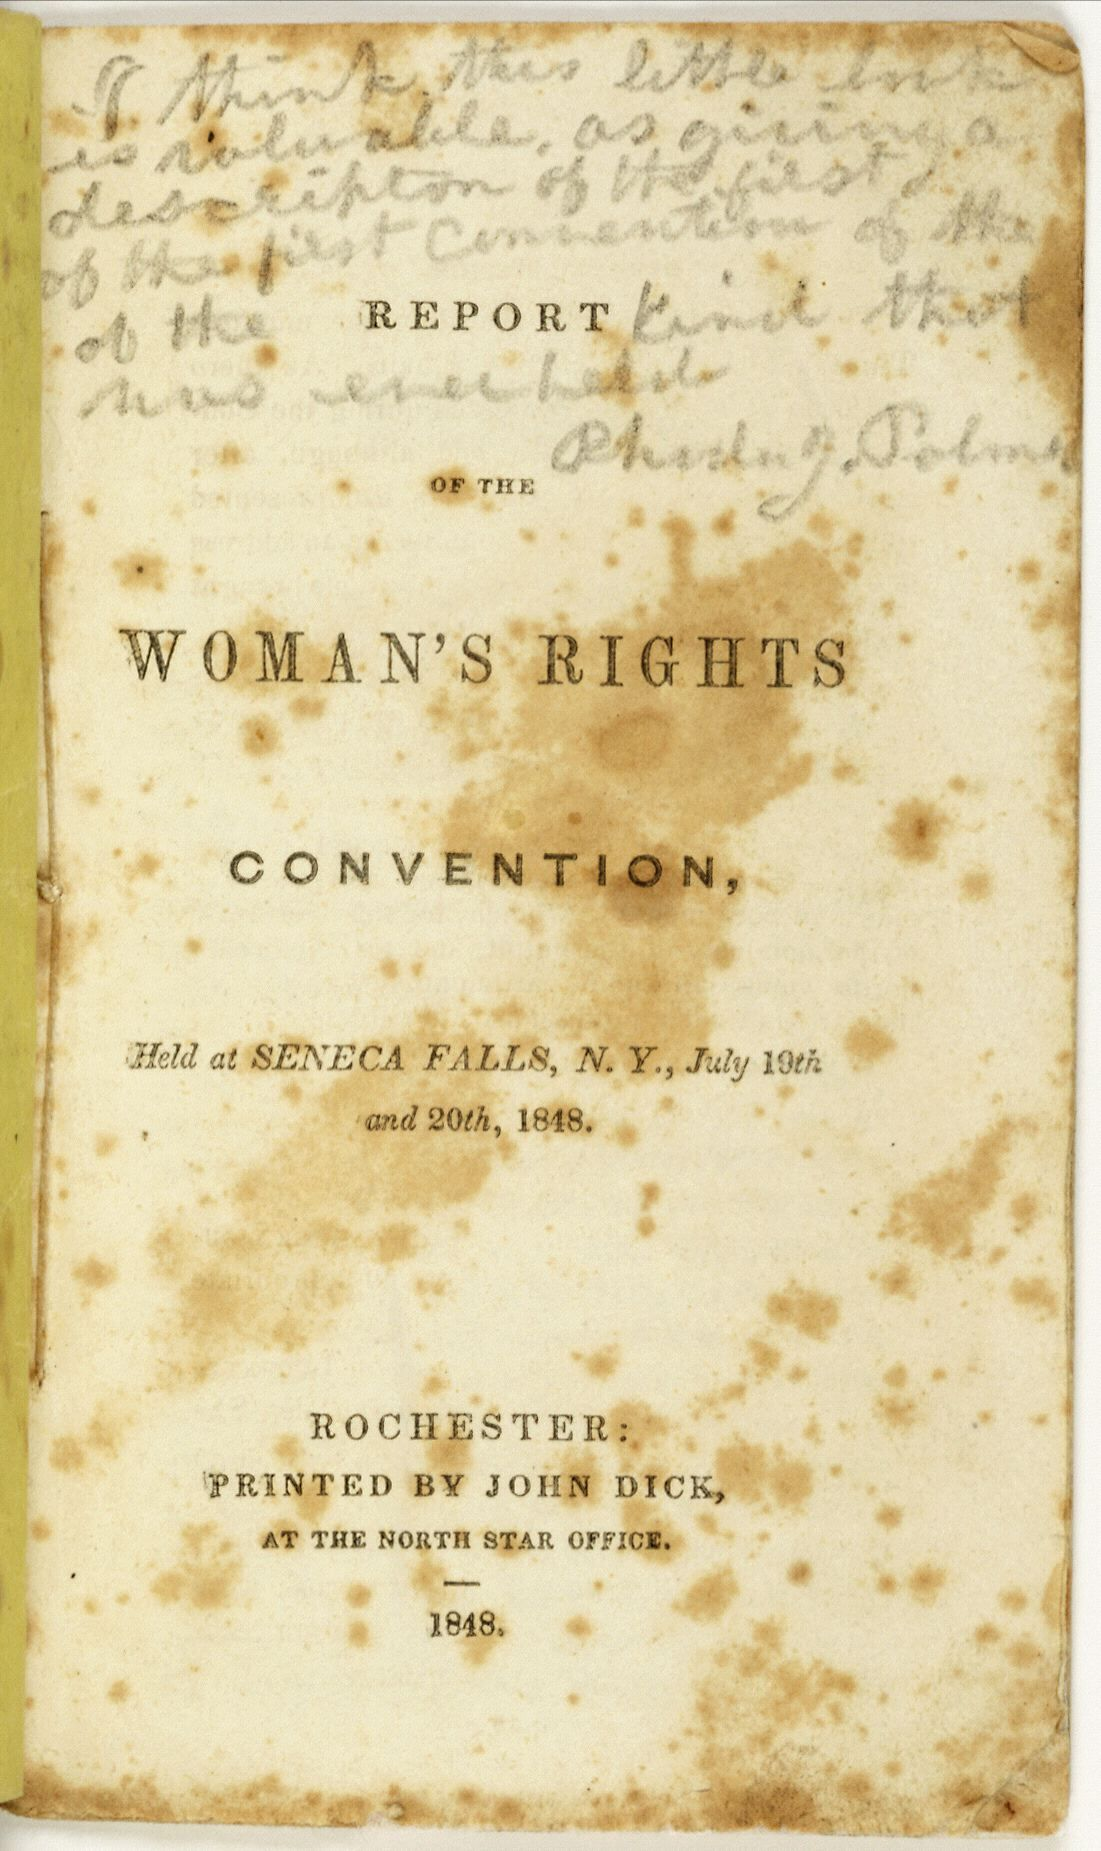 Seneca Falls Convention Took Place In 1848 And Was The 1st Convention To Discuss Woman S Rights It Was Organized By Lucretia Mott And Elizabeth Cady Stanton